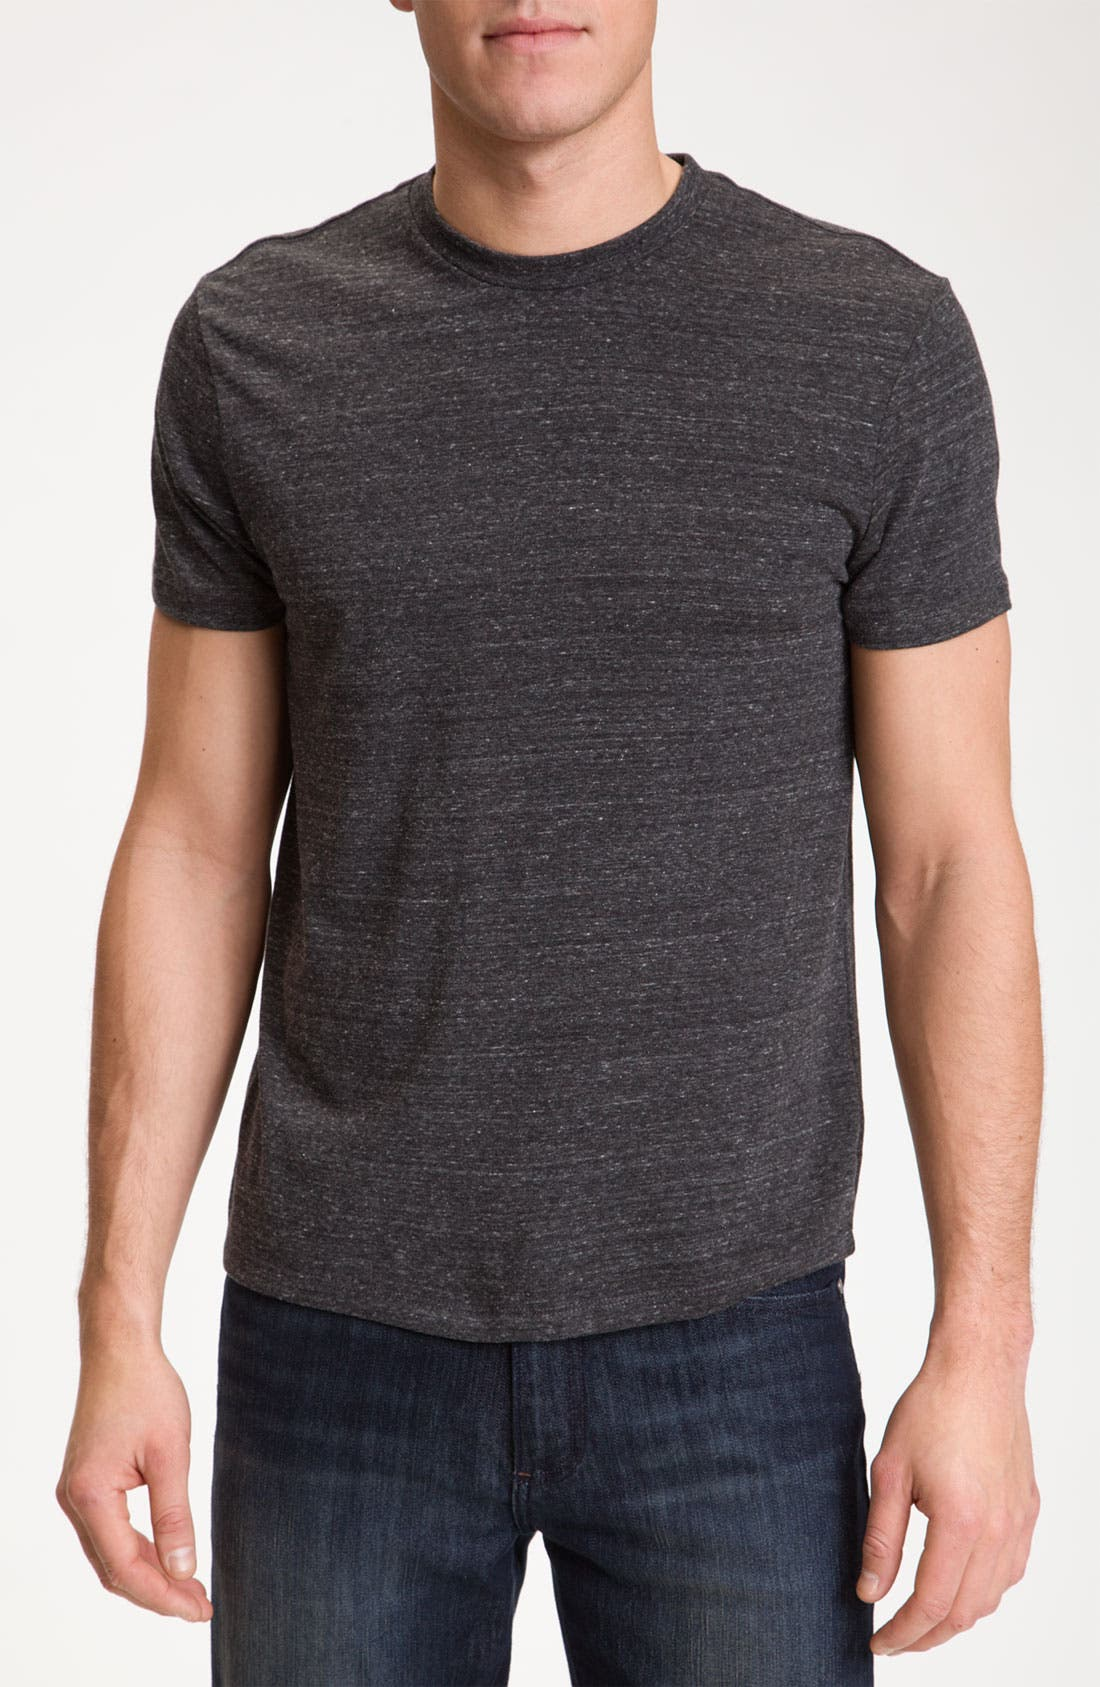 Main Image - The Rail Slim Fit Crewneck T-Shirt (2 for $30)